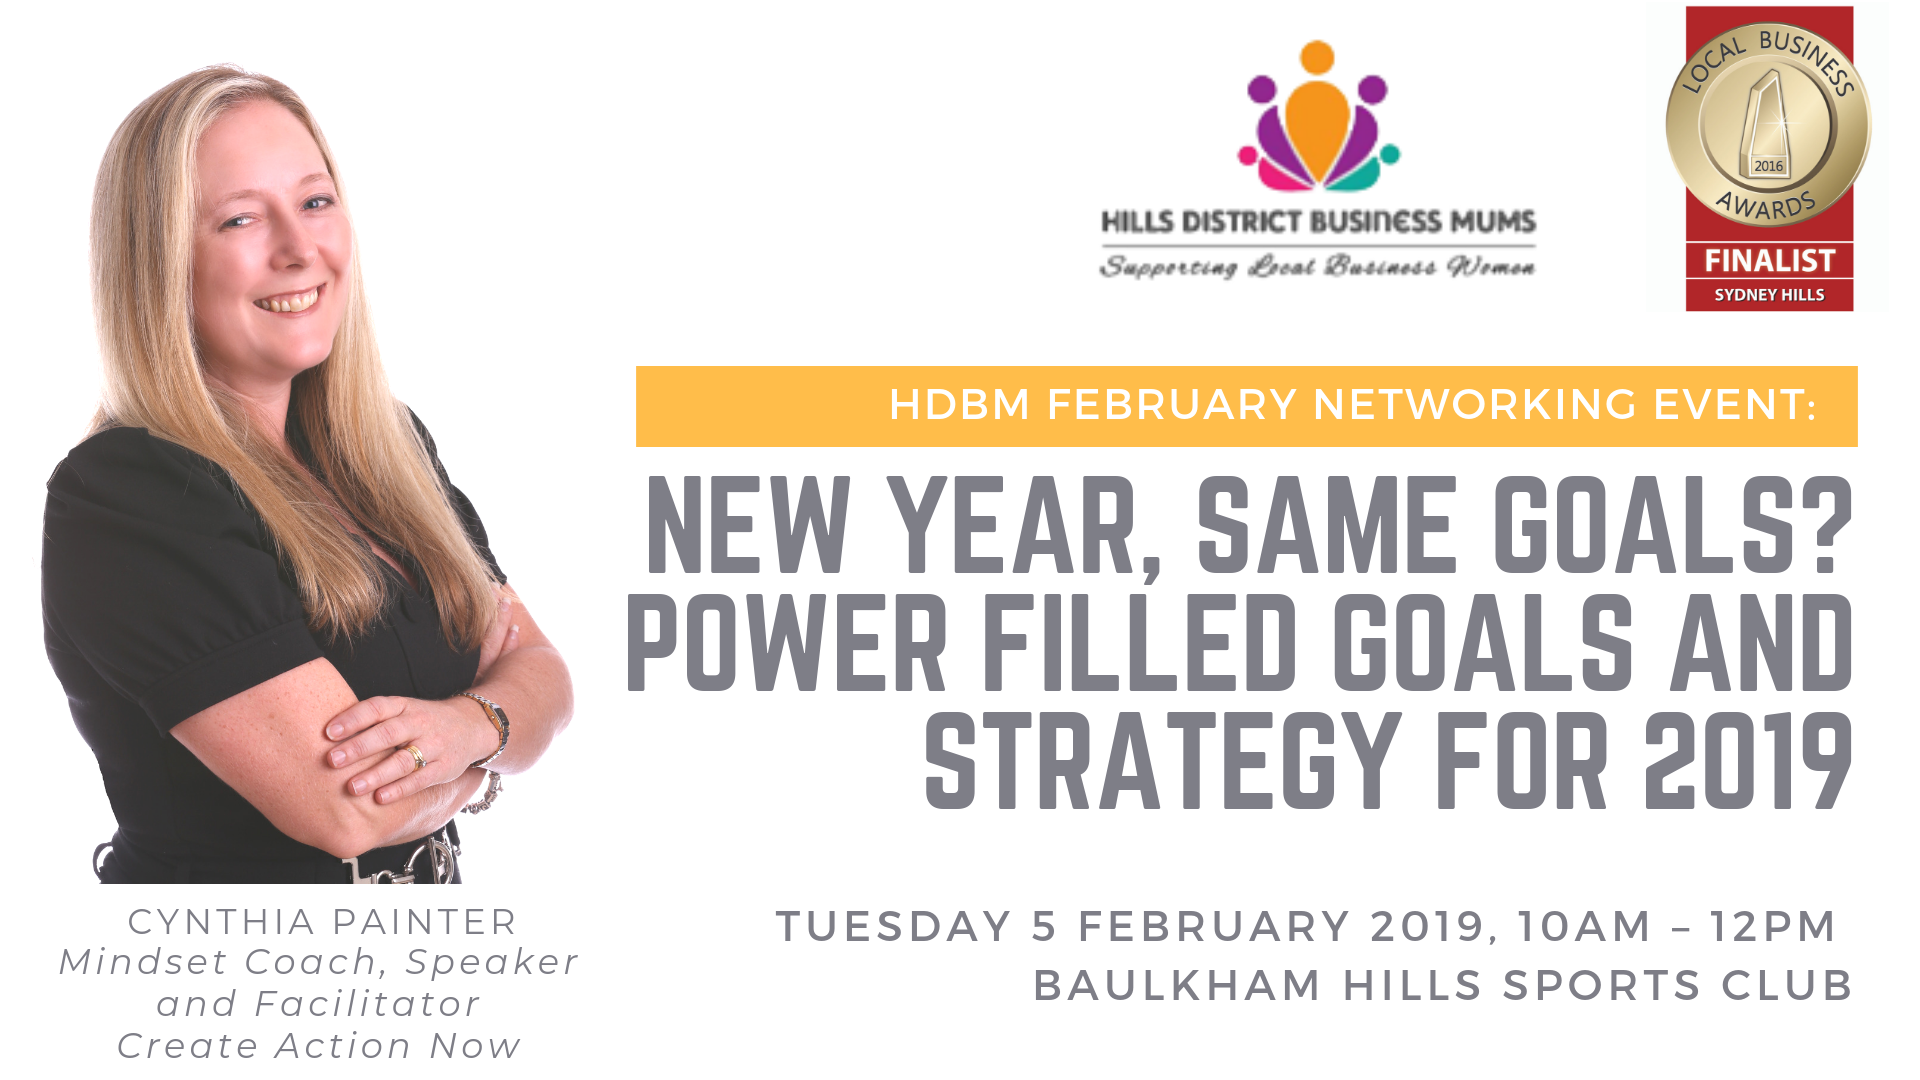 HDBM FEBRUARY NETWORKING EVENT_ New Year, Same Goals_ Power filled Goals and Strategy for 2019